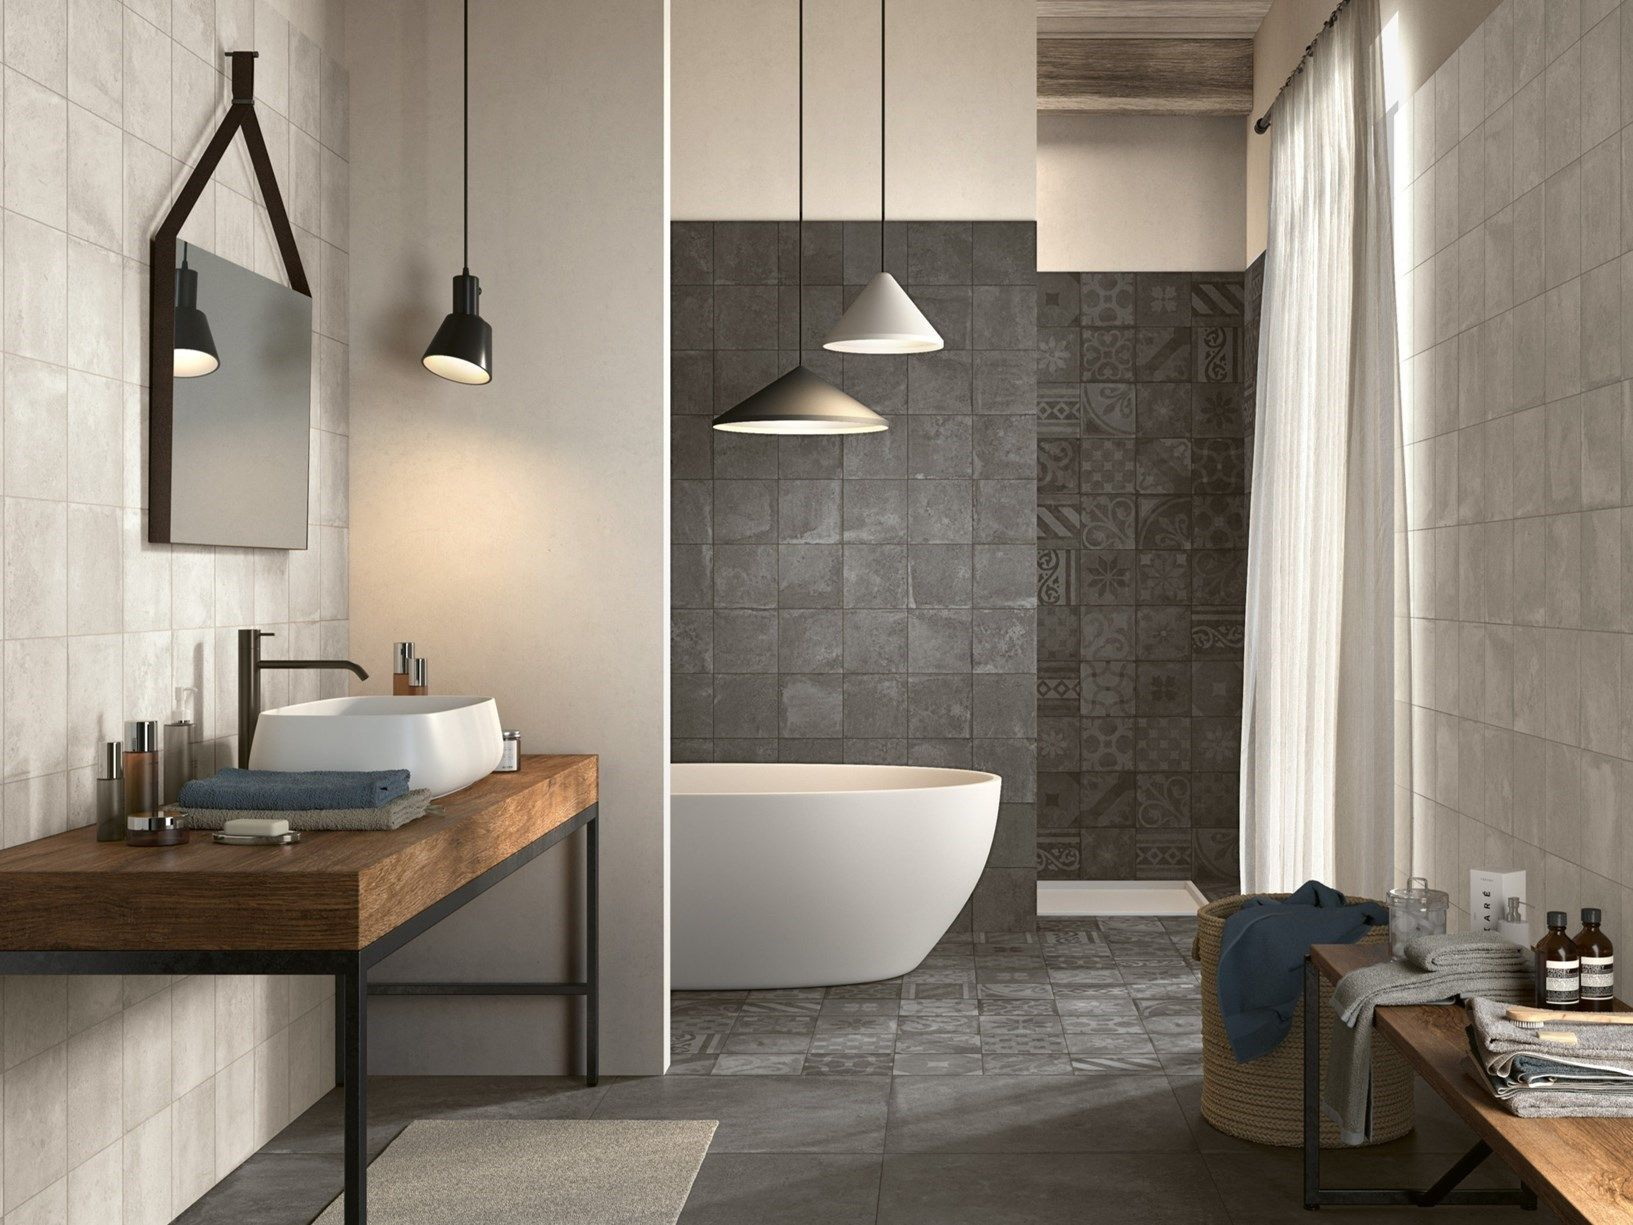 Baignoire Fibre De Pierre homely spaces designedpanaria ceramica